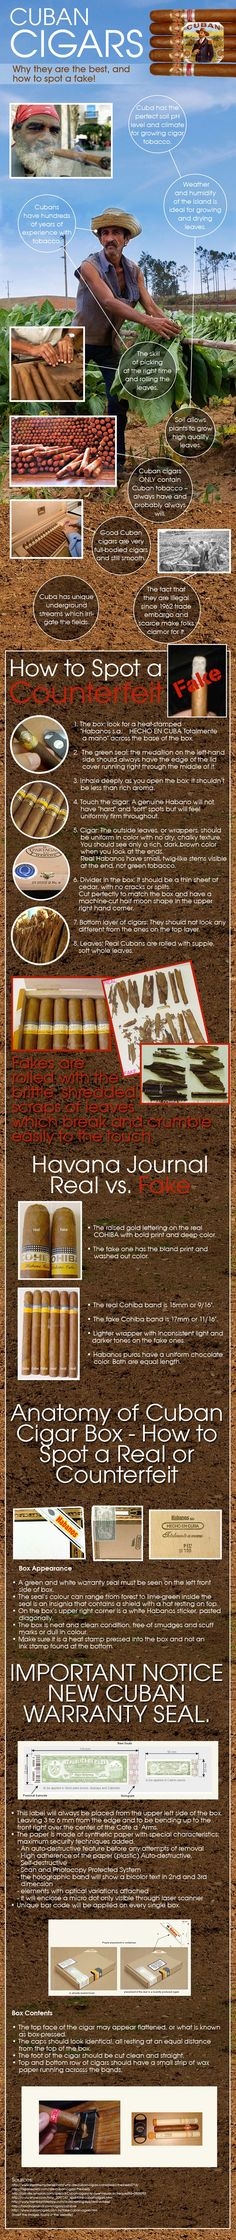 Cuban Cigars - Why They Are the Best and How to Spot a Fake